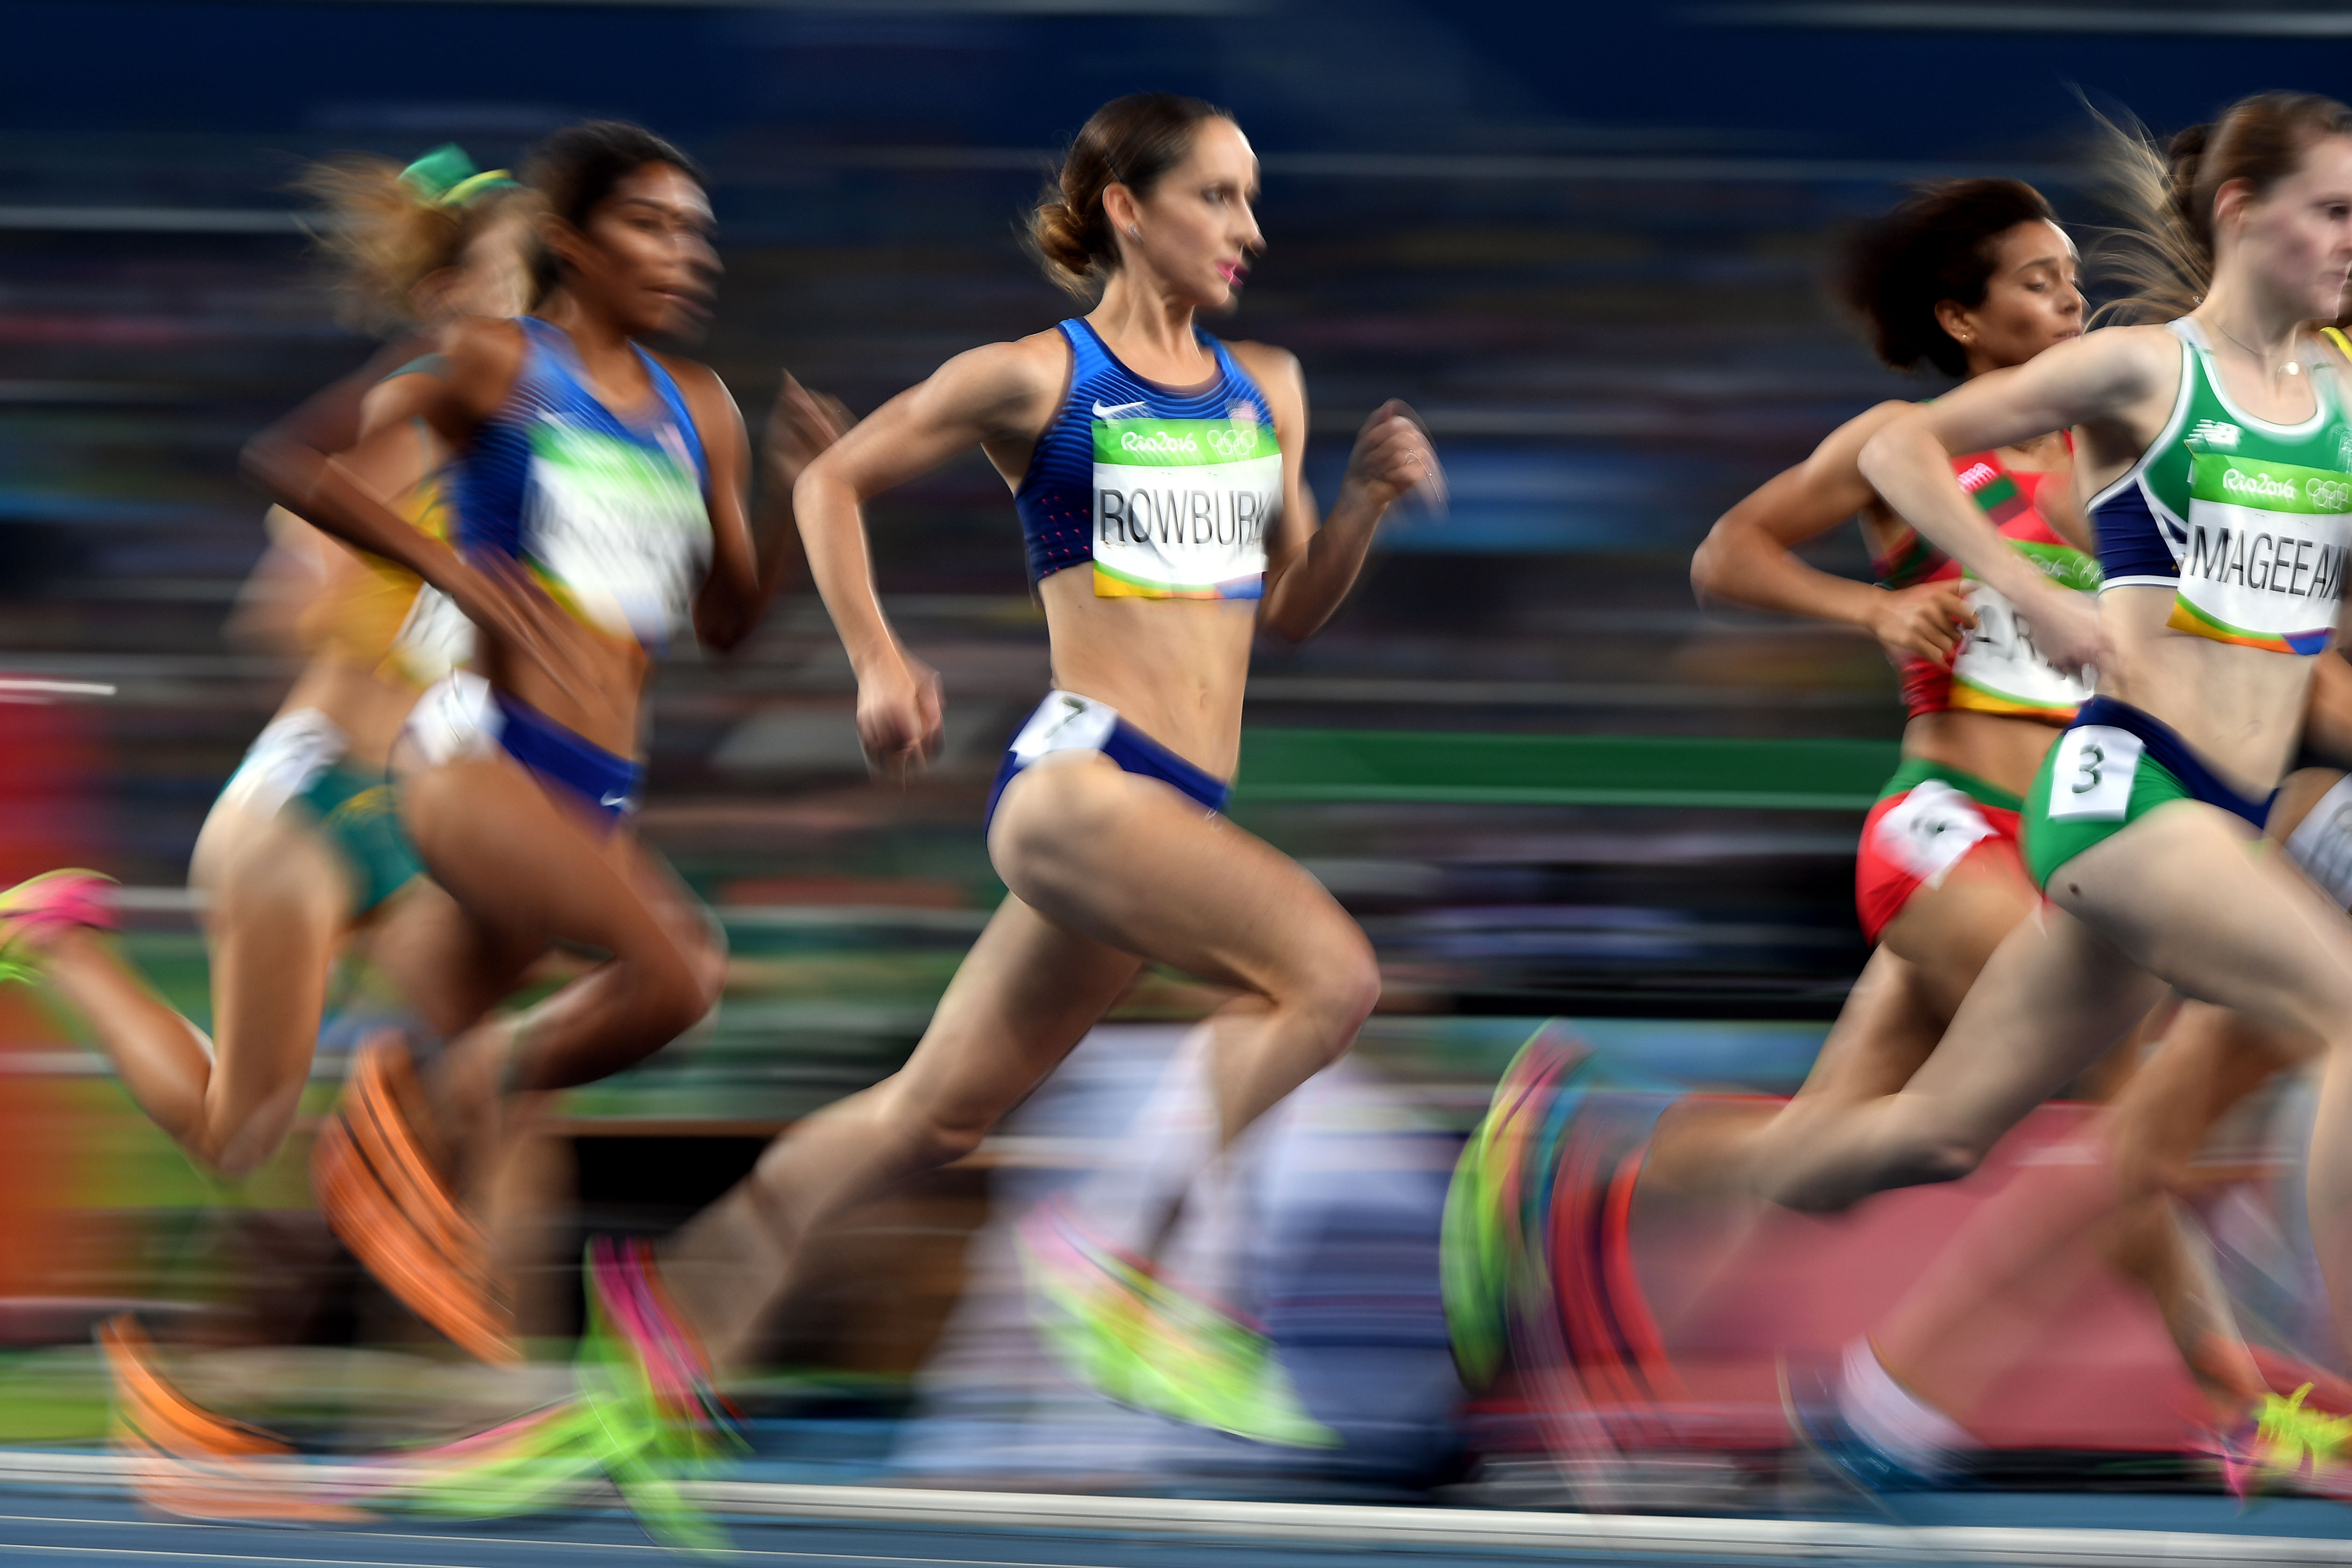 Shannon Rowbury of Team USA is in the women's 1500m final for the third straight Olympics.